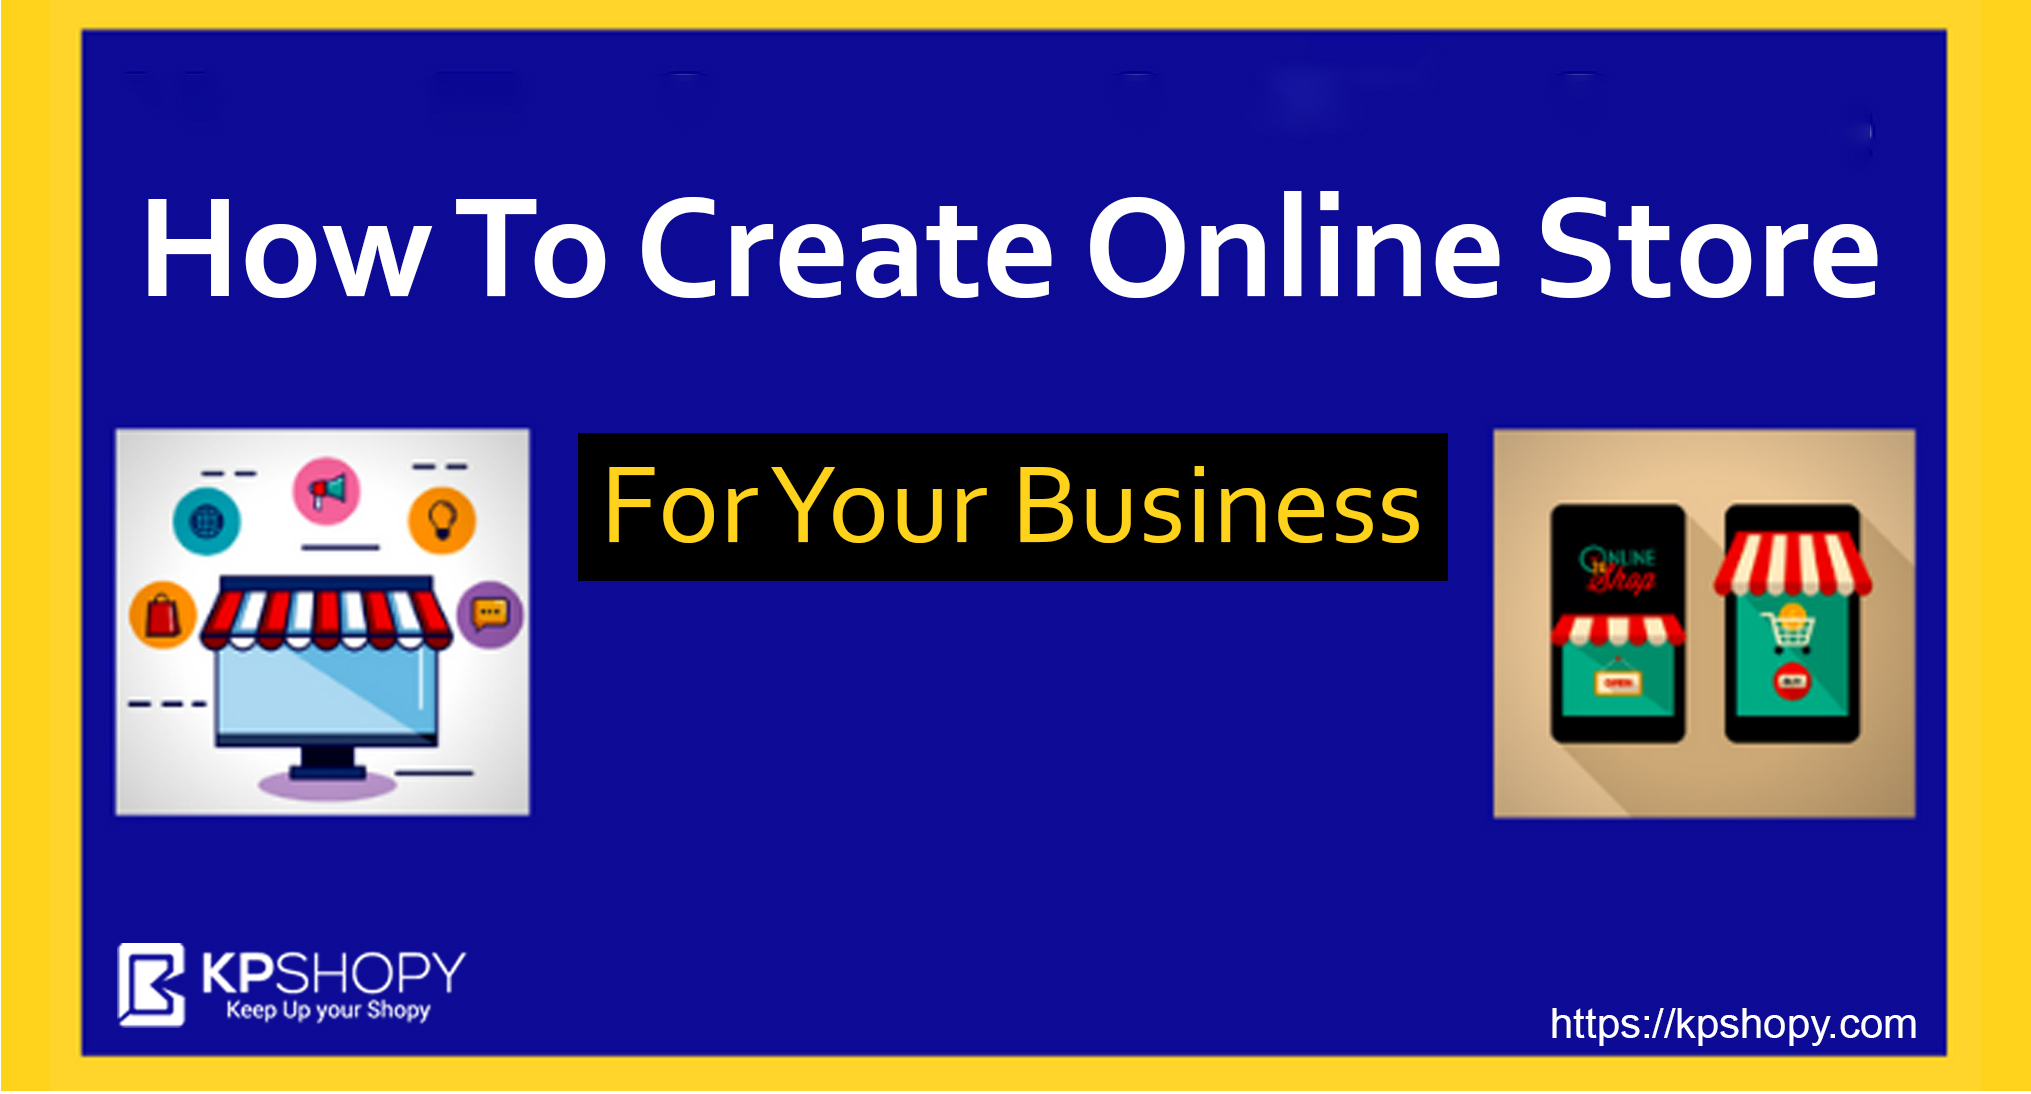 How To Create Online Store